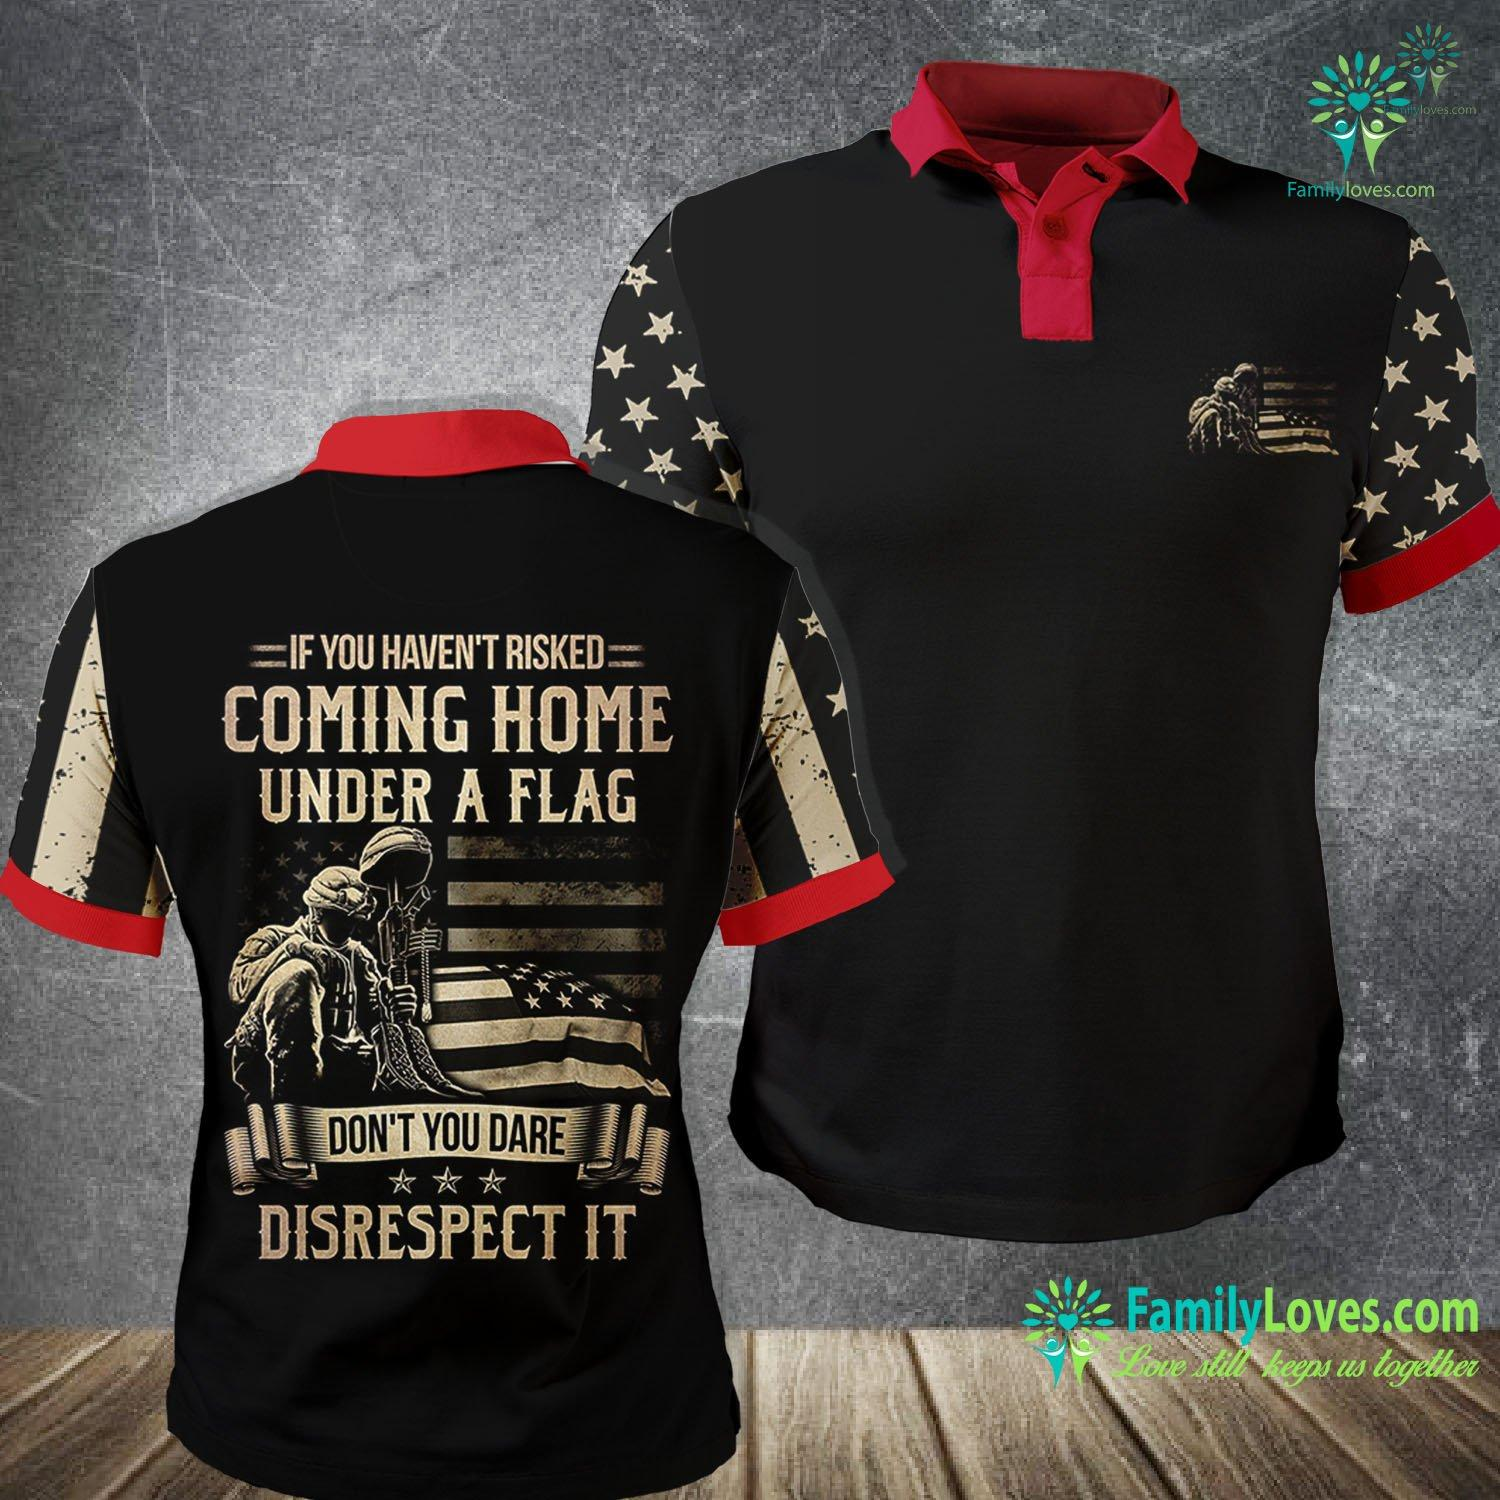 If You Haven'T Risked Coming Home Under A Flag Don'T You Dare Disrespect It 3D All Over Printed Polo Shirt Familyloves.com